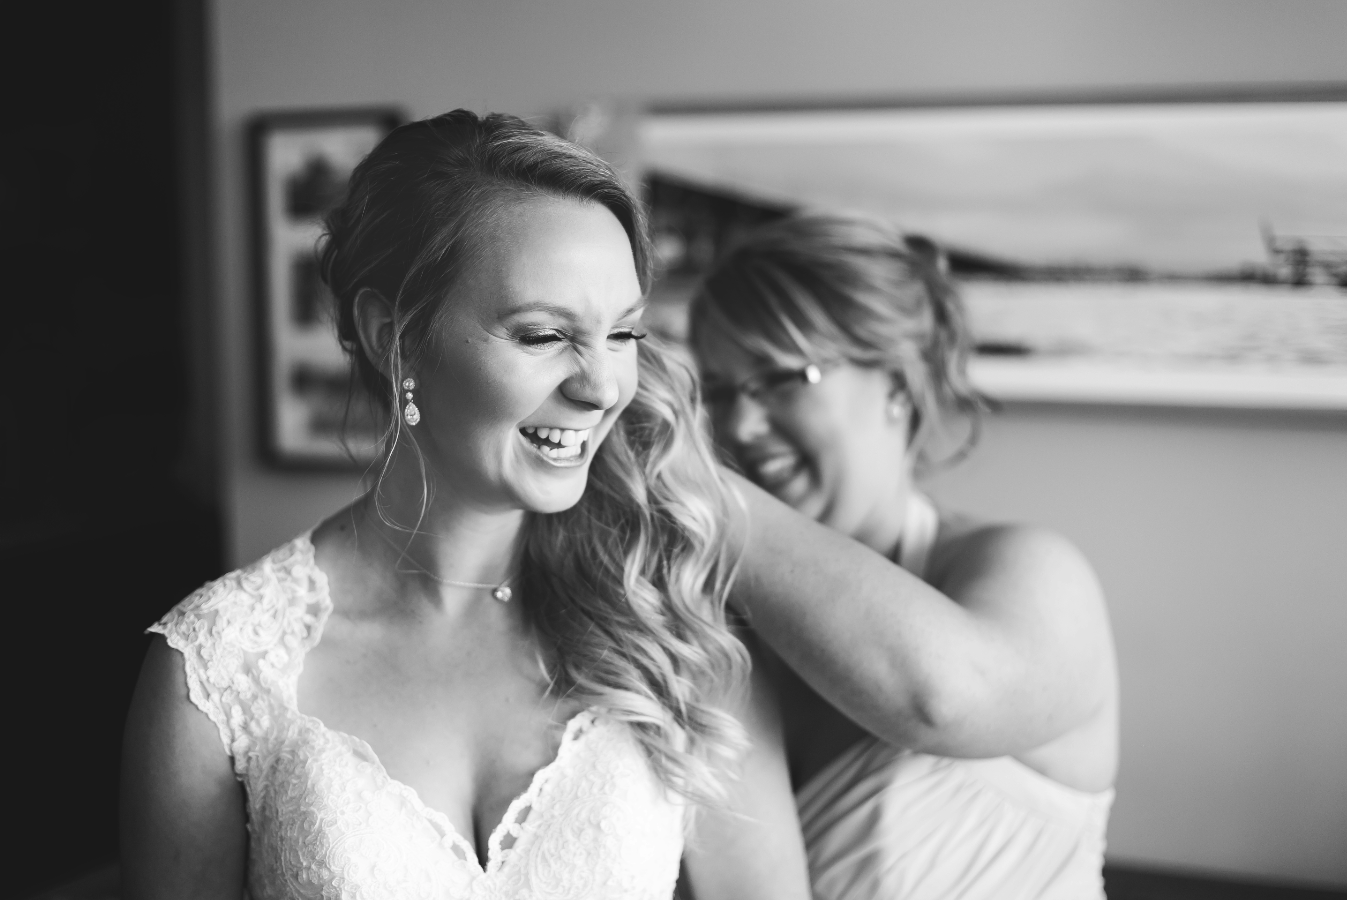 Moments-by-Lauren-Hamilton-Toronto-Niagara-Wedding-Photographer-Genuine-Emotional-Images-Photo-4.png